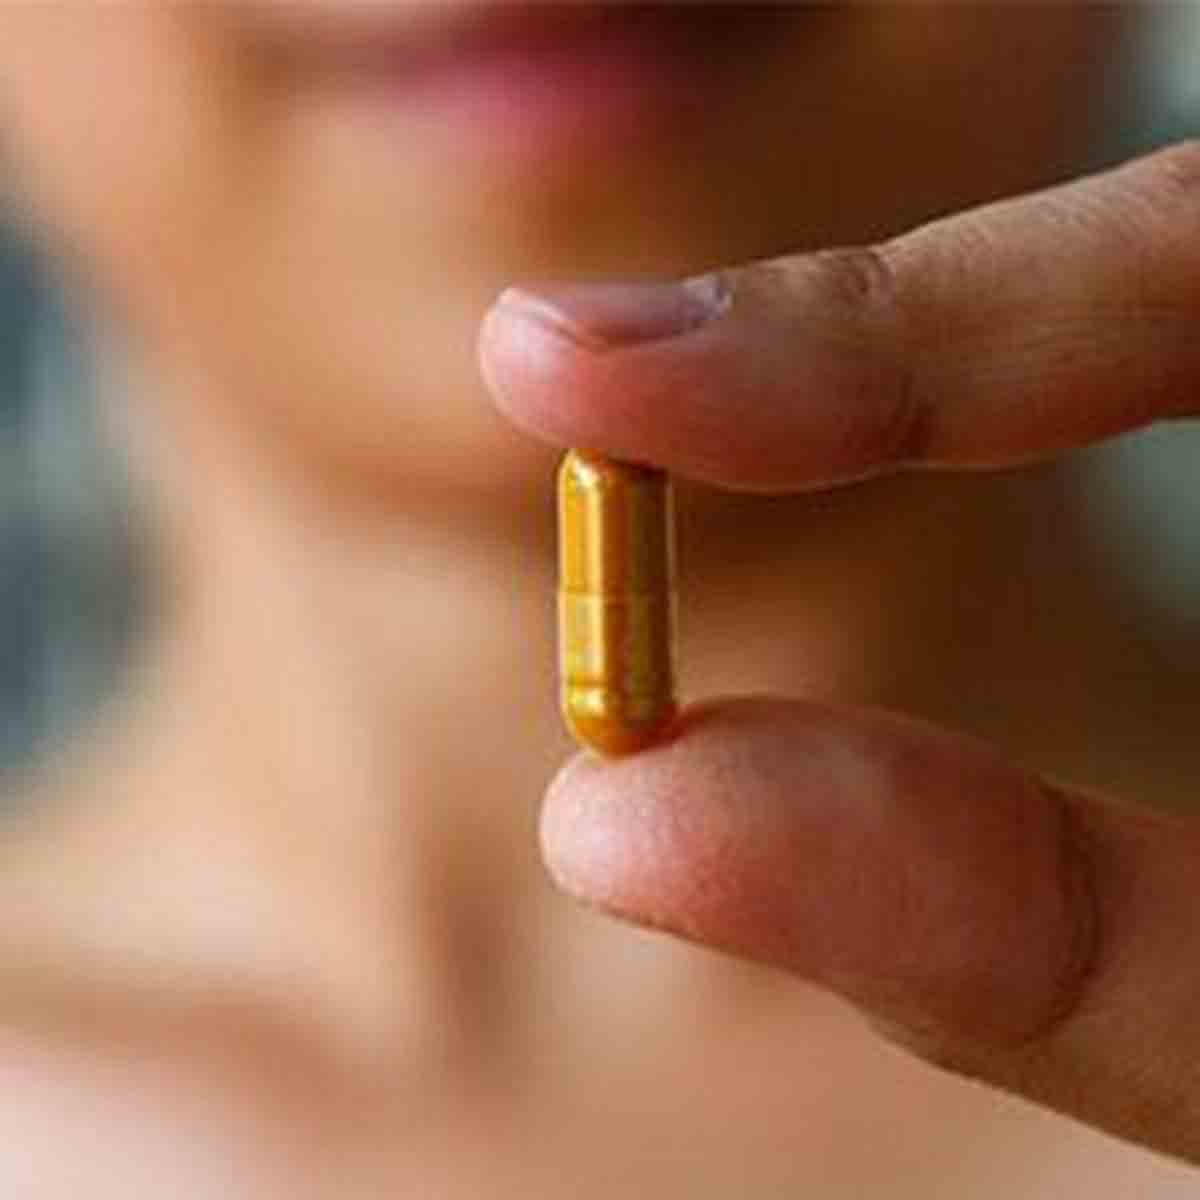 Exercise Pill 516 - A Pill To Replace Exercise - How To Get Hold